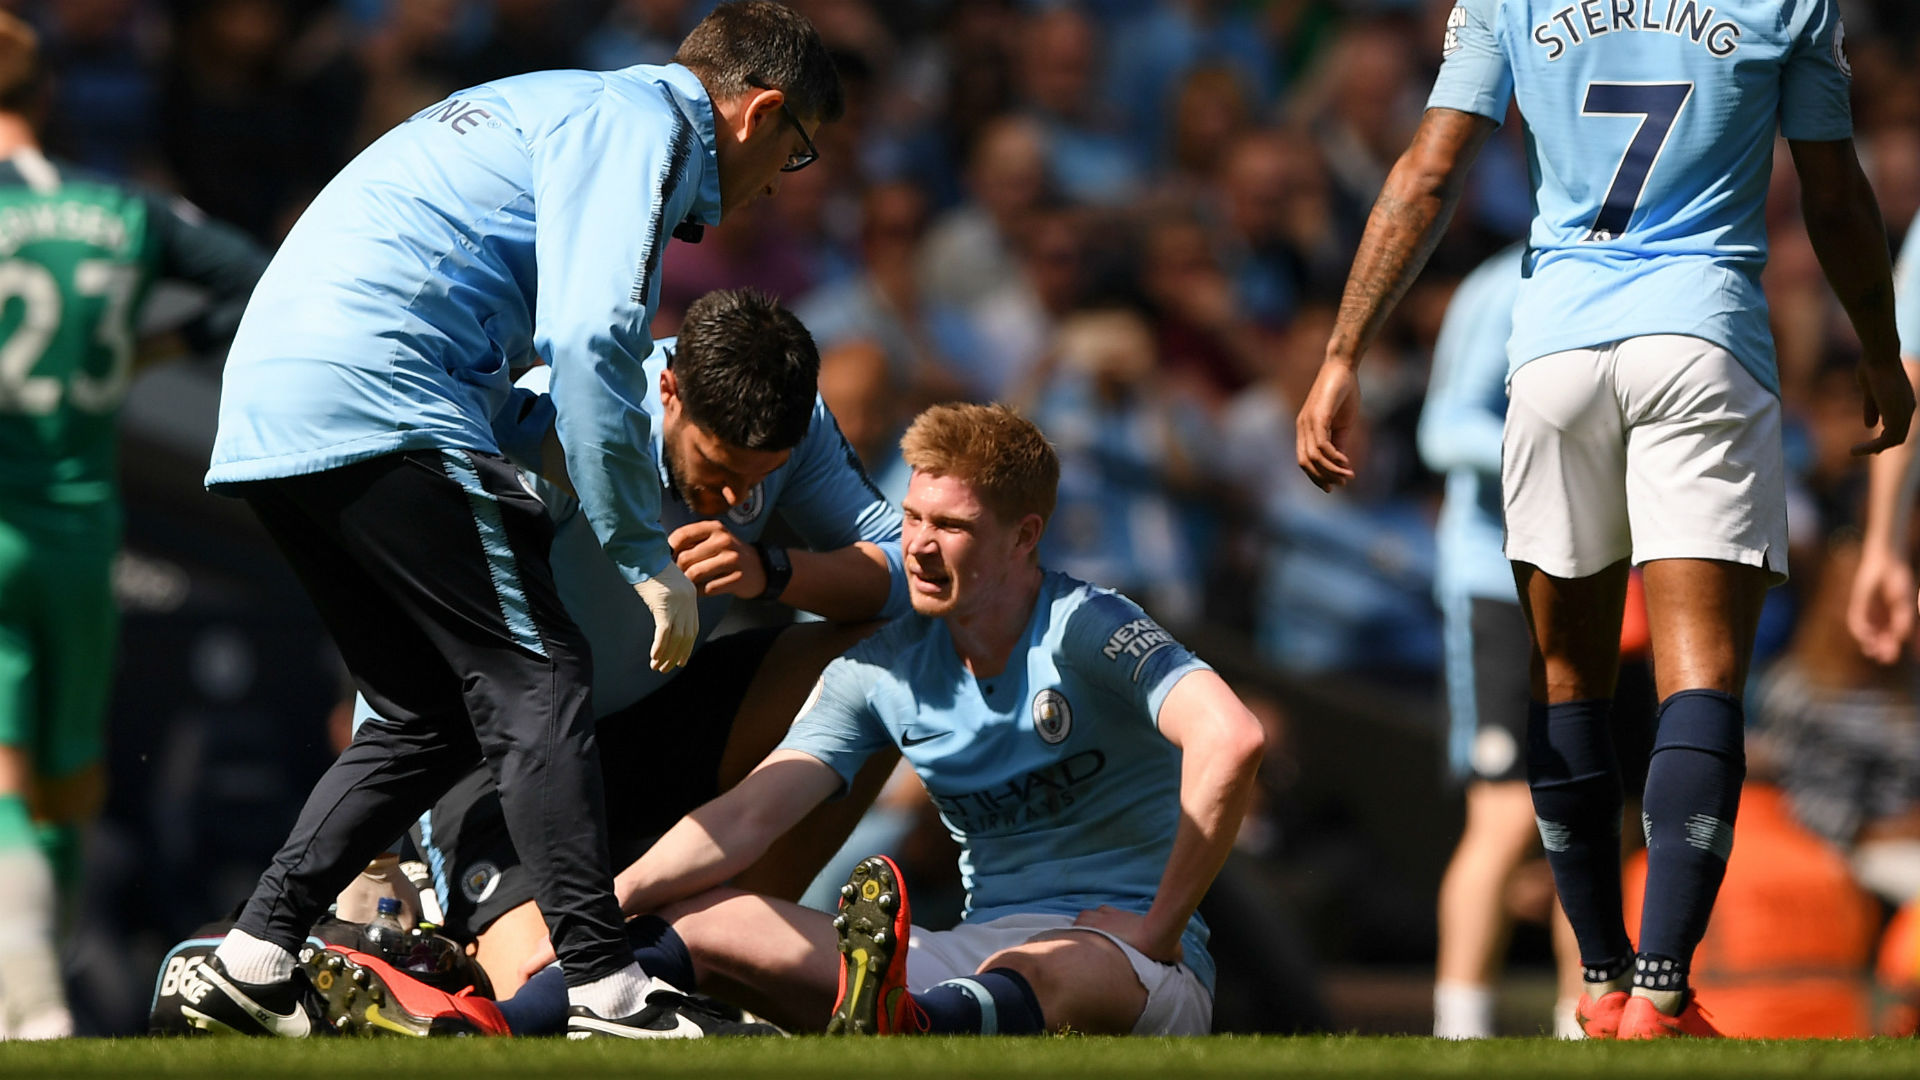 De Bruyne's season in doubt